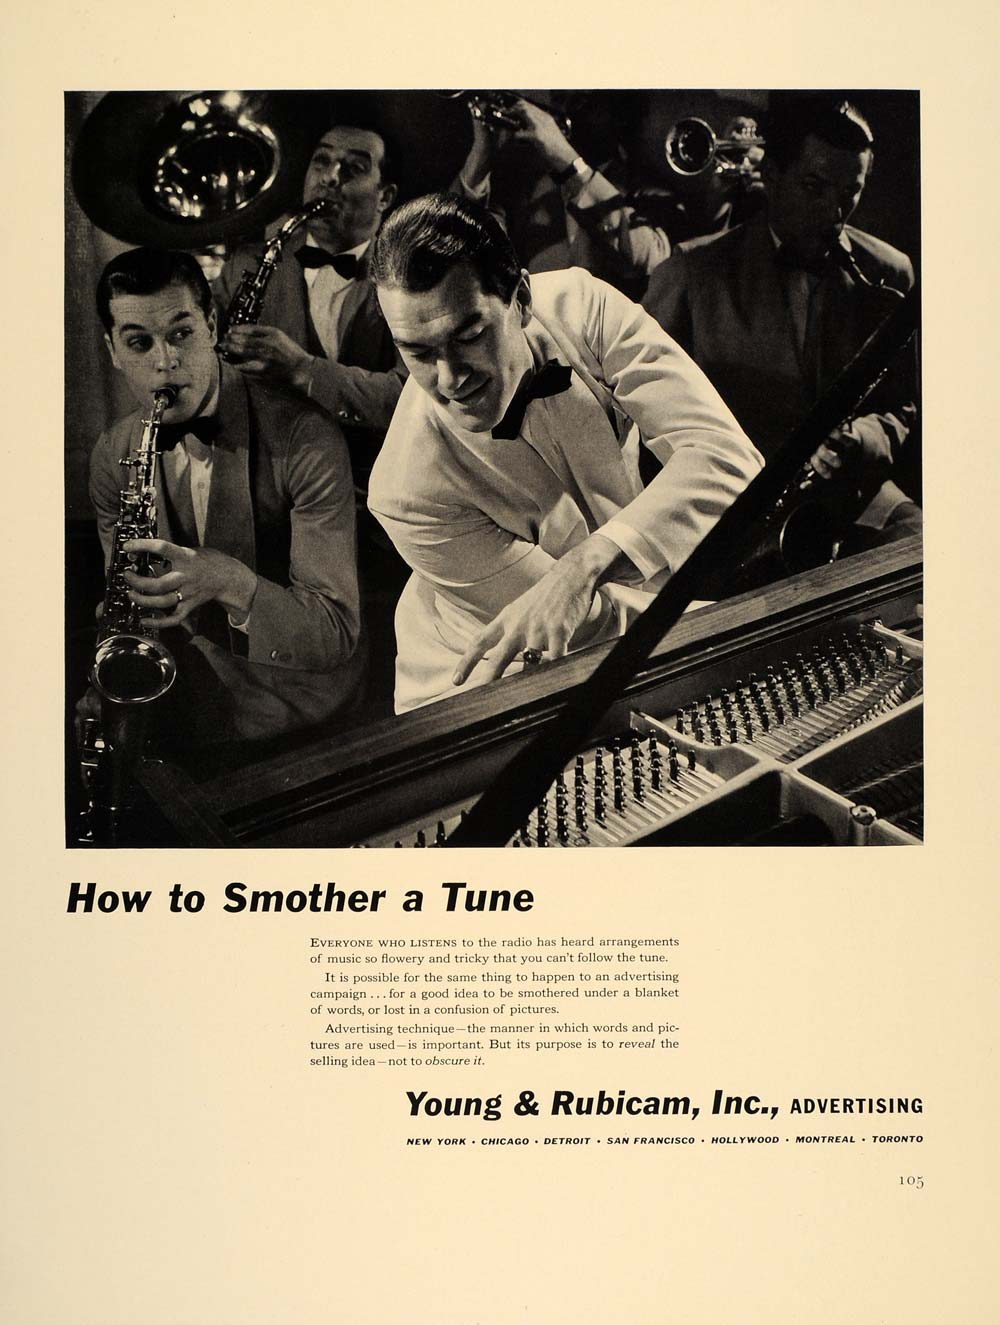 1941 Ad Young & Rubicam Advertising Band Sax Piano Tune - ORIGINAL FT8